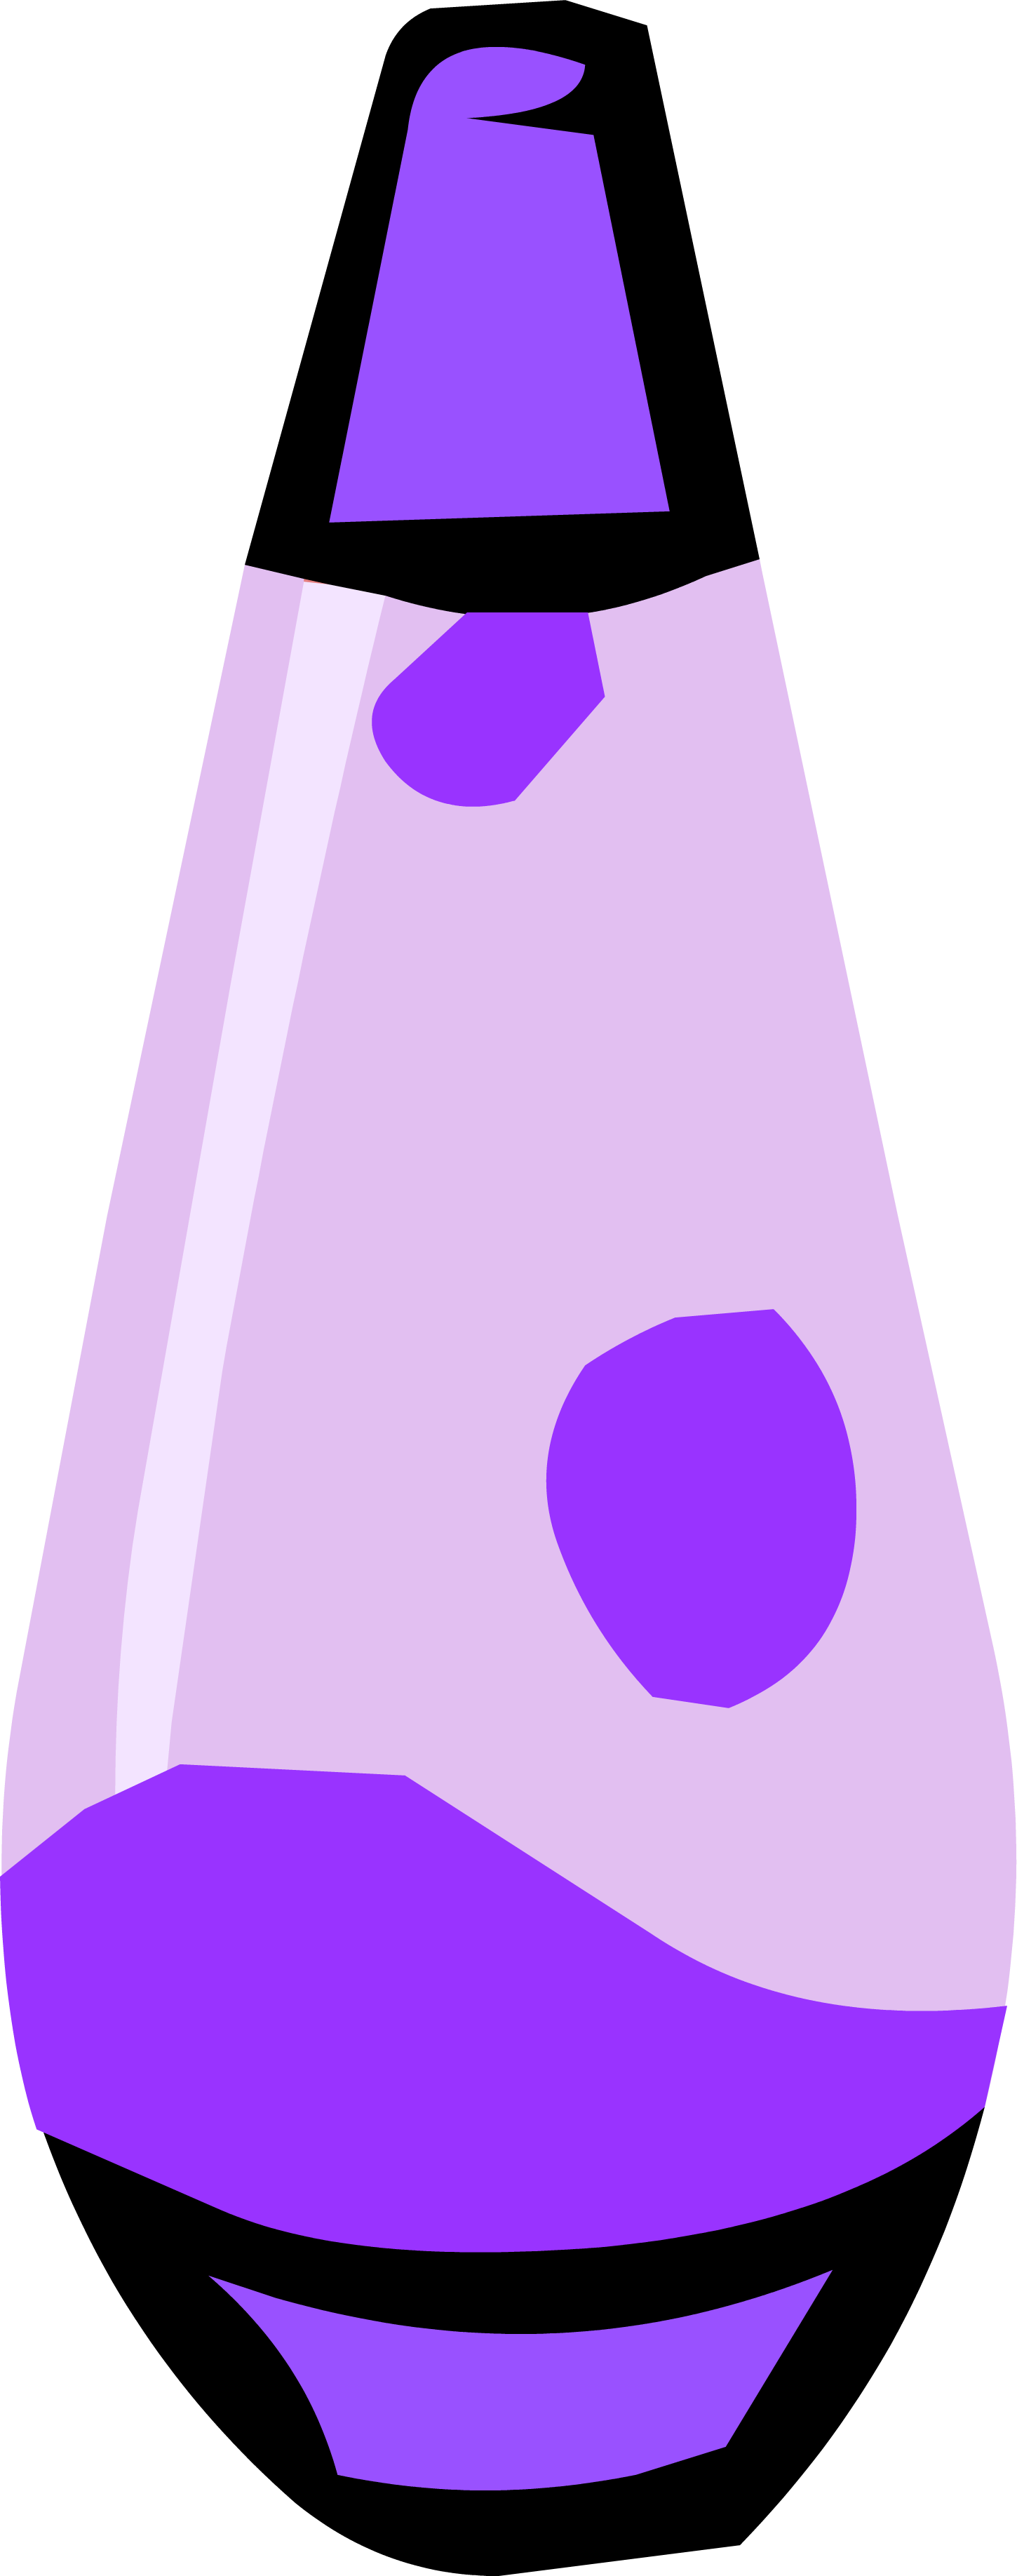 Purple lava club penguin. Lamp clipart lampara